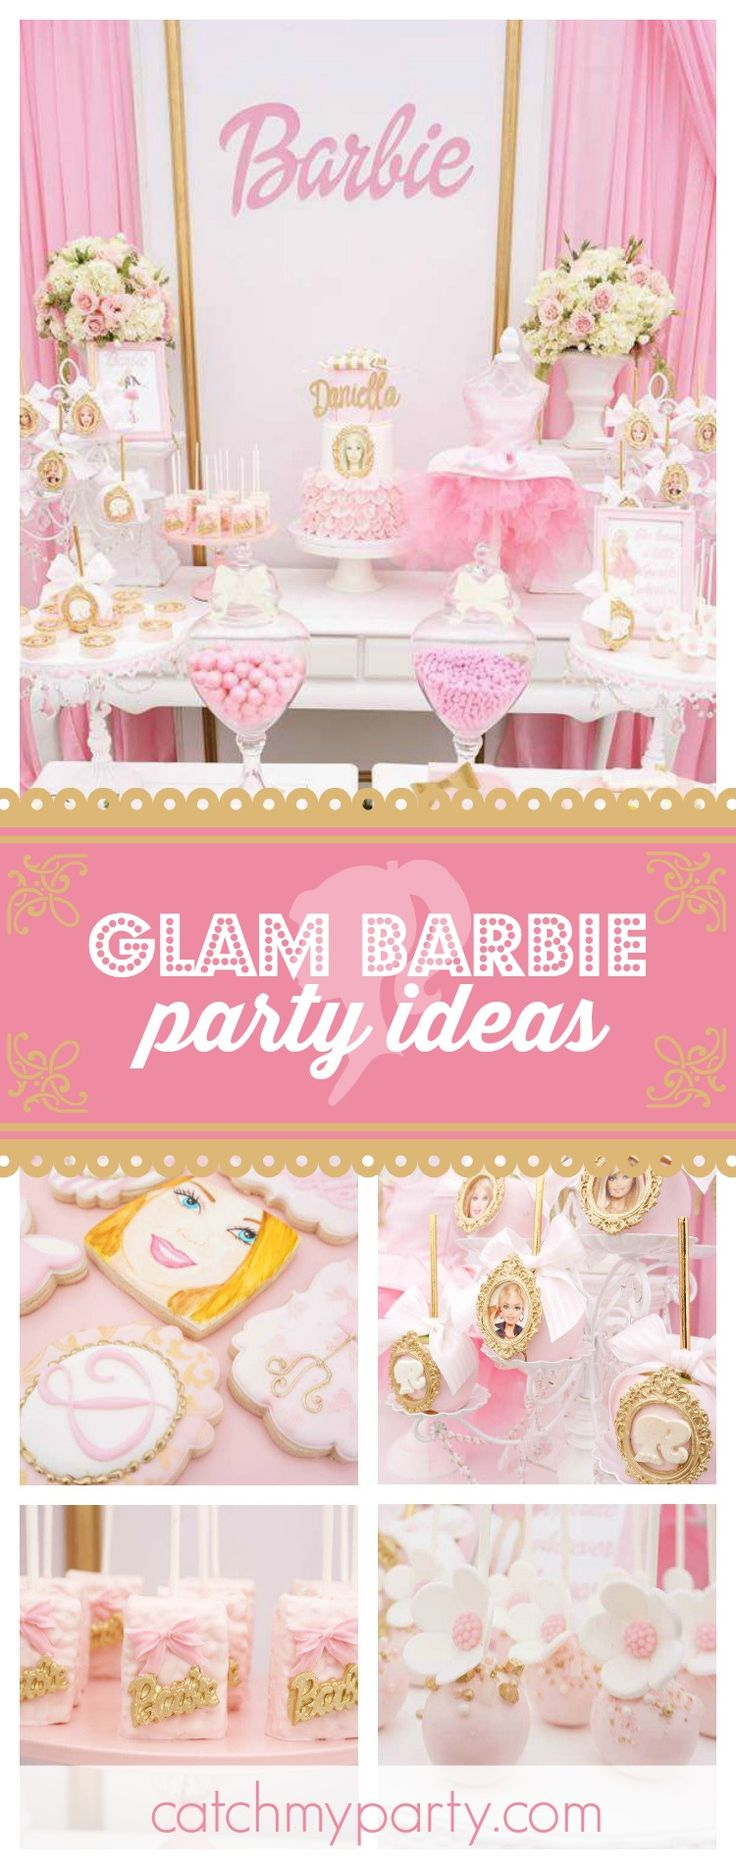 Take a look at this glamorous Barbie birthday party! The dessert table is amazing!! See more party ideas and share yours at CatchMyParty.com